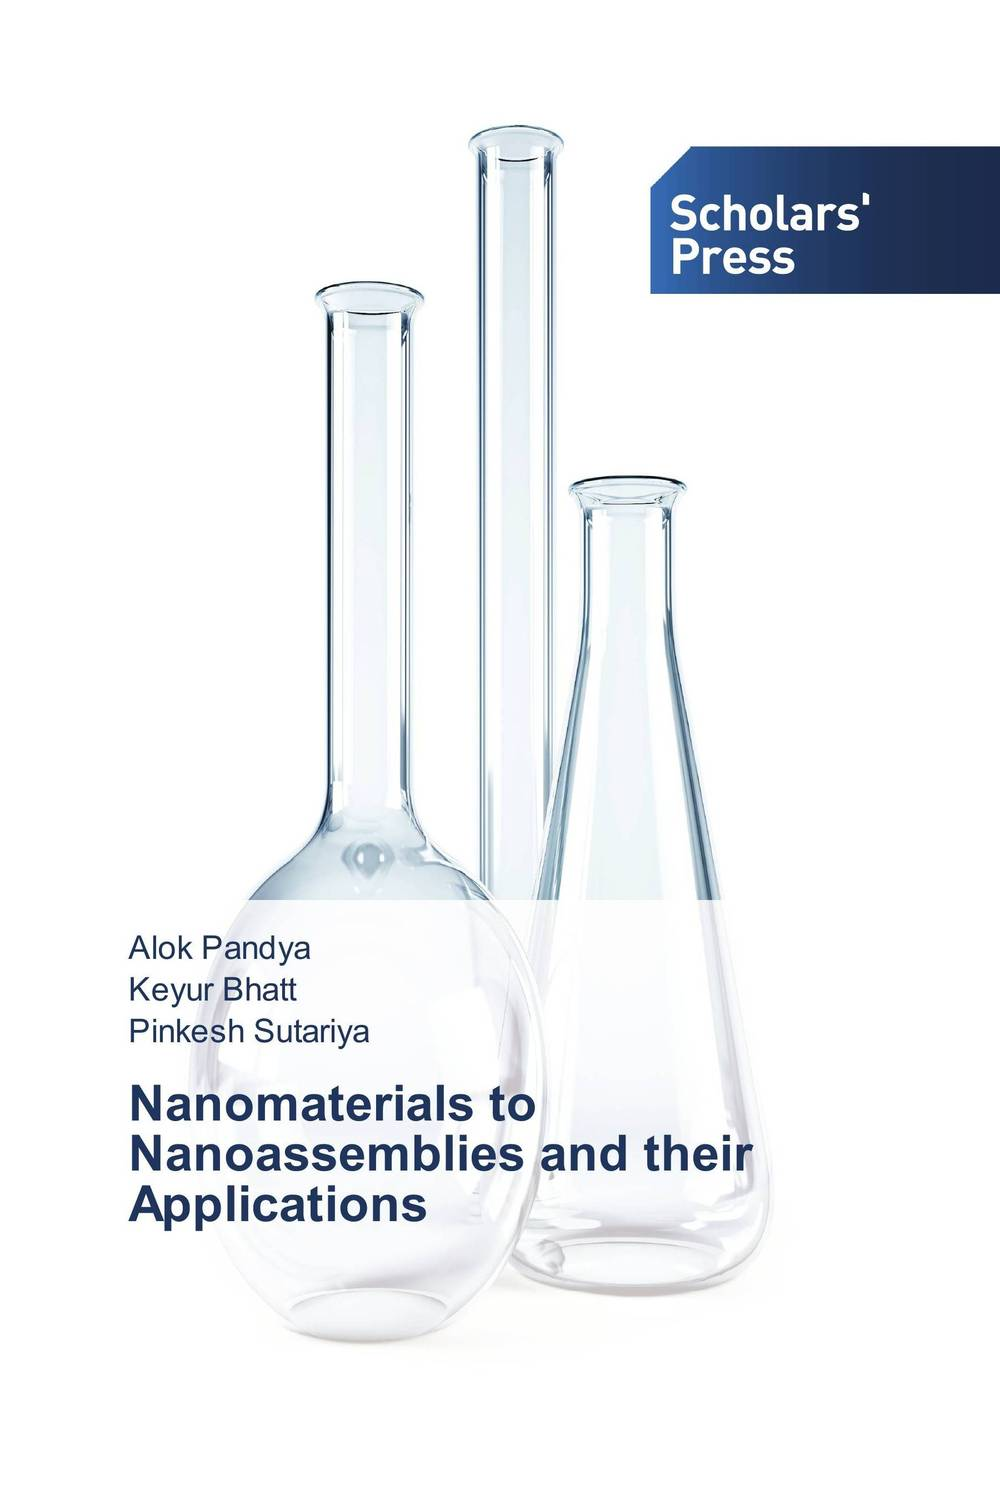 Nanomaterials to Nanoassemblies and their Applications in situ detection of dna damage methods and protocols